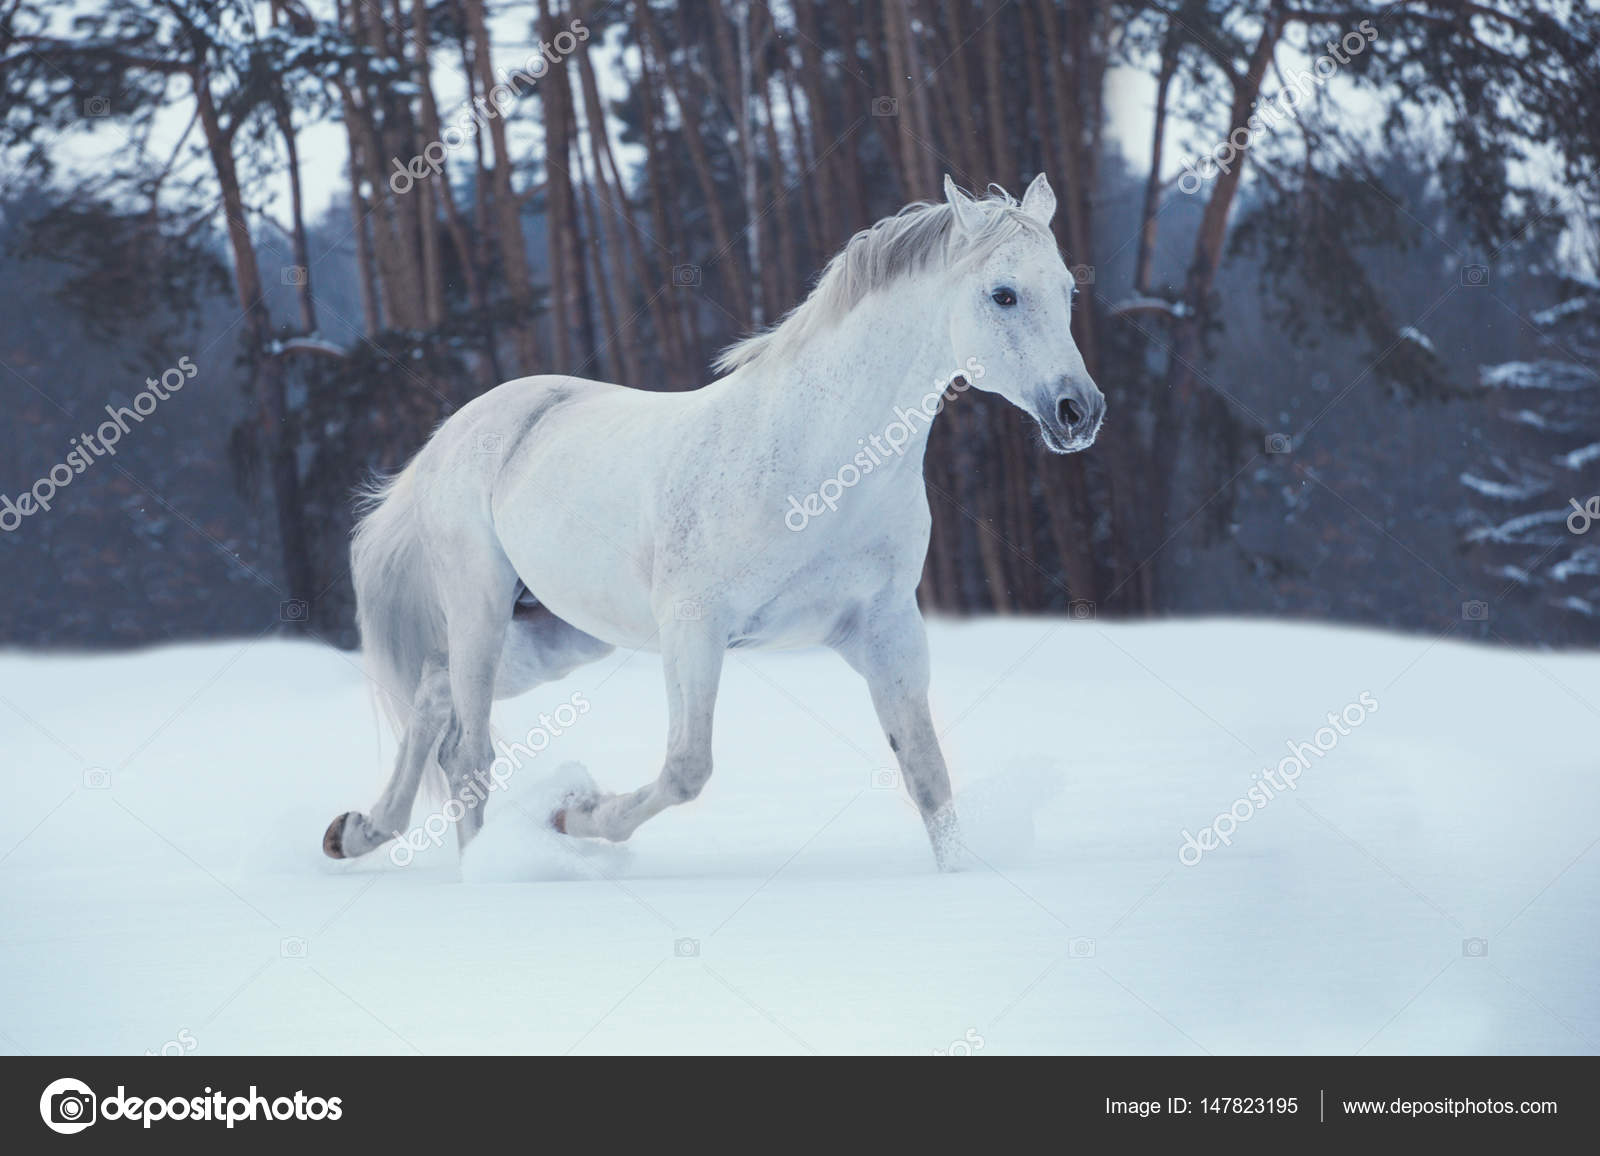 White Horse Runs On Snow On Forest Background Stock Photo C Ashva Pictures 147823195